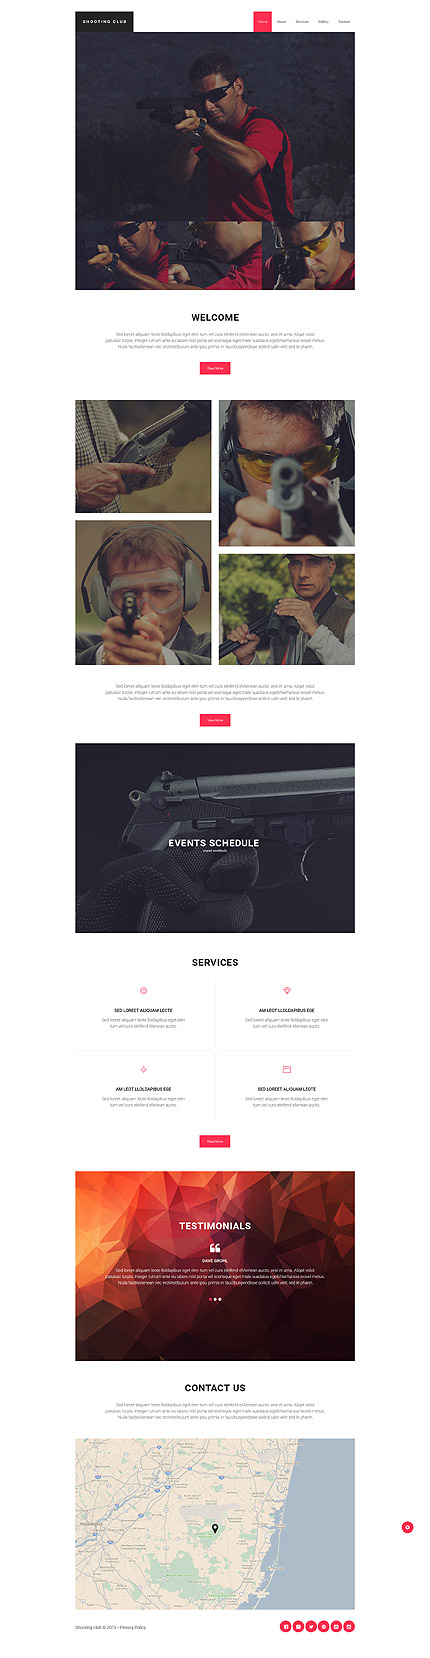 Shooting Club Website Template Themes Business Responsive